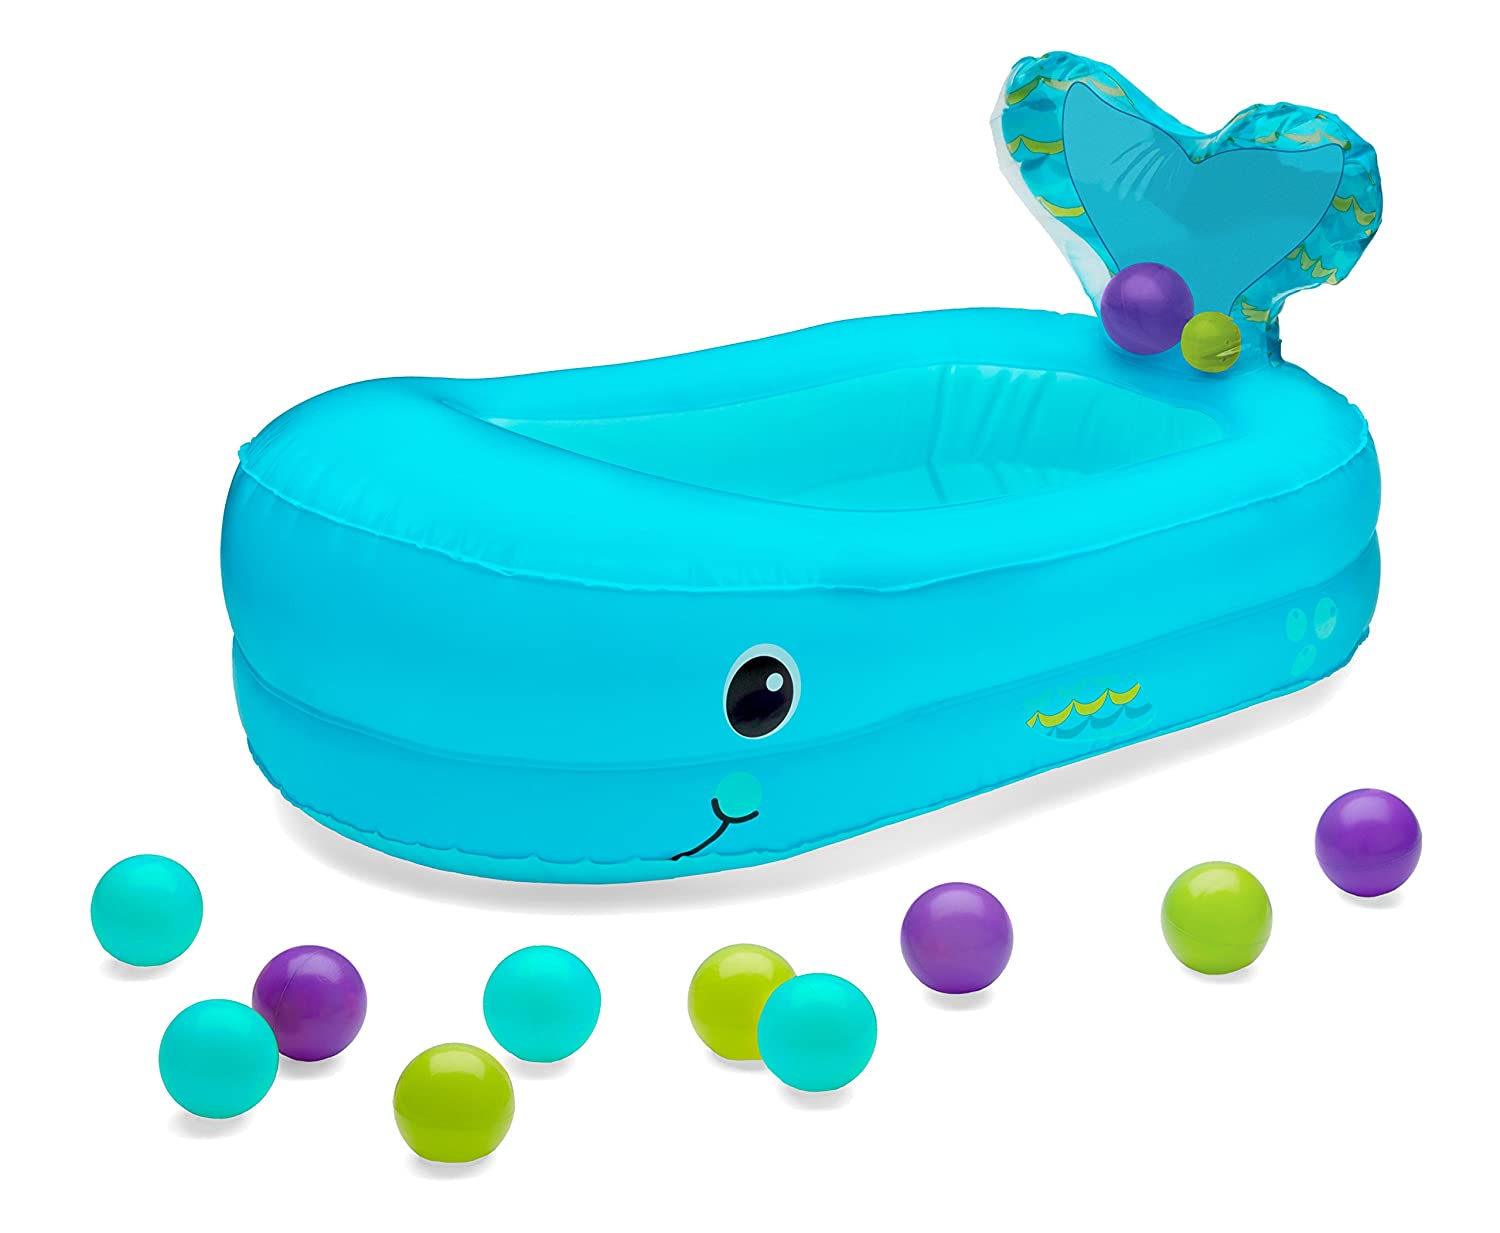 Infantino Whale Bubble Inflatable Bath Tub 205-016